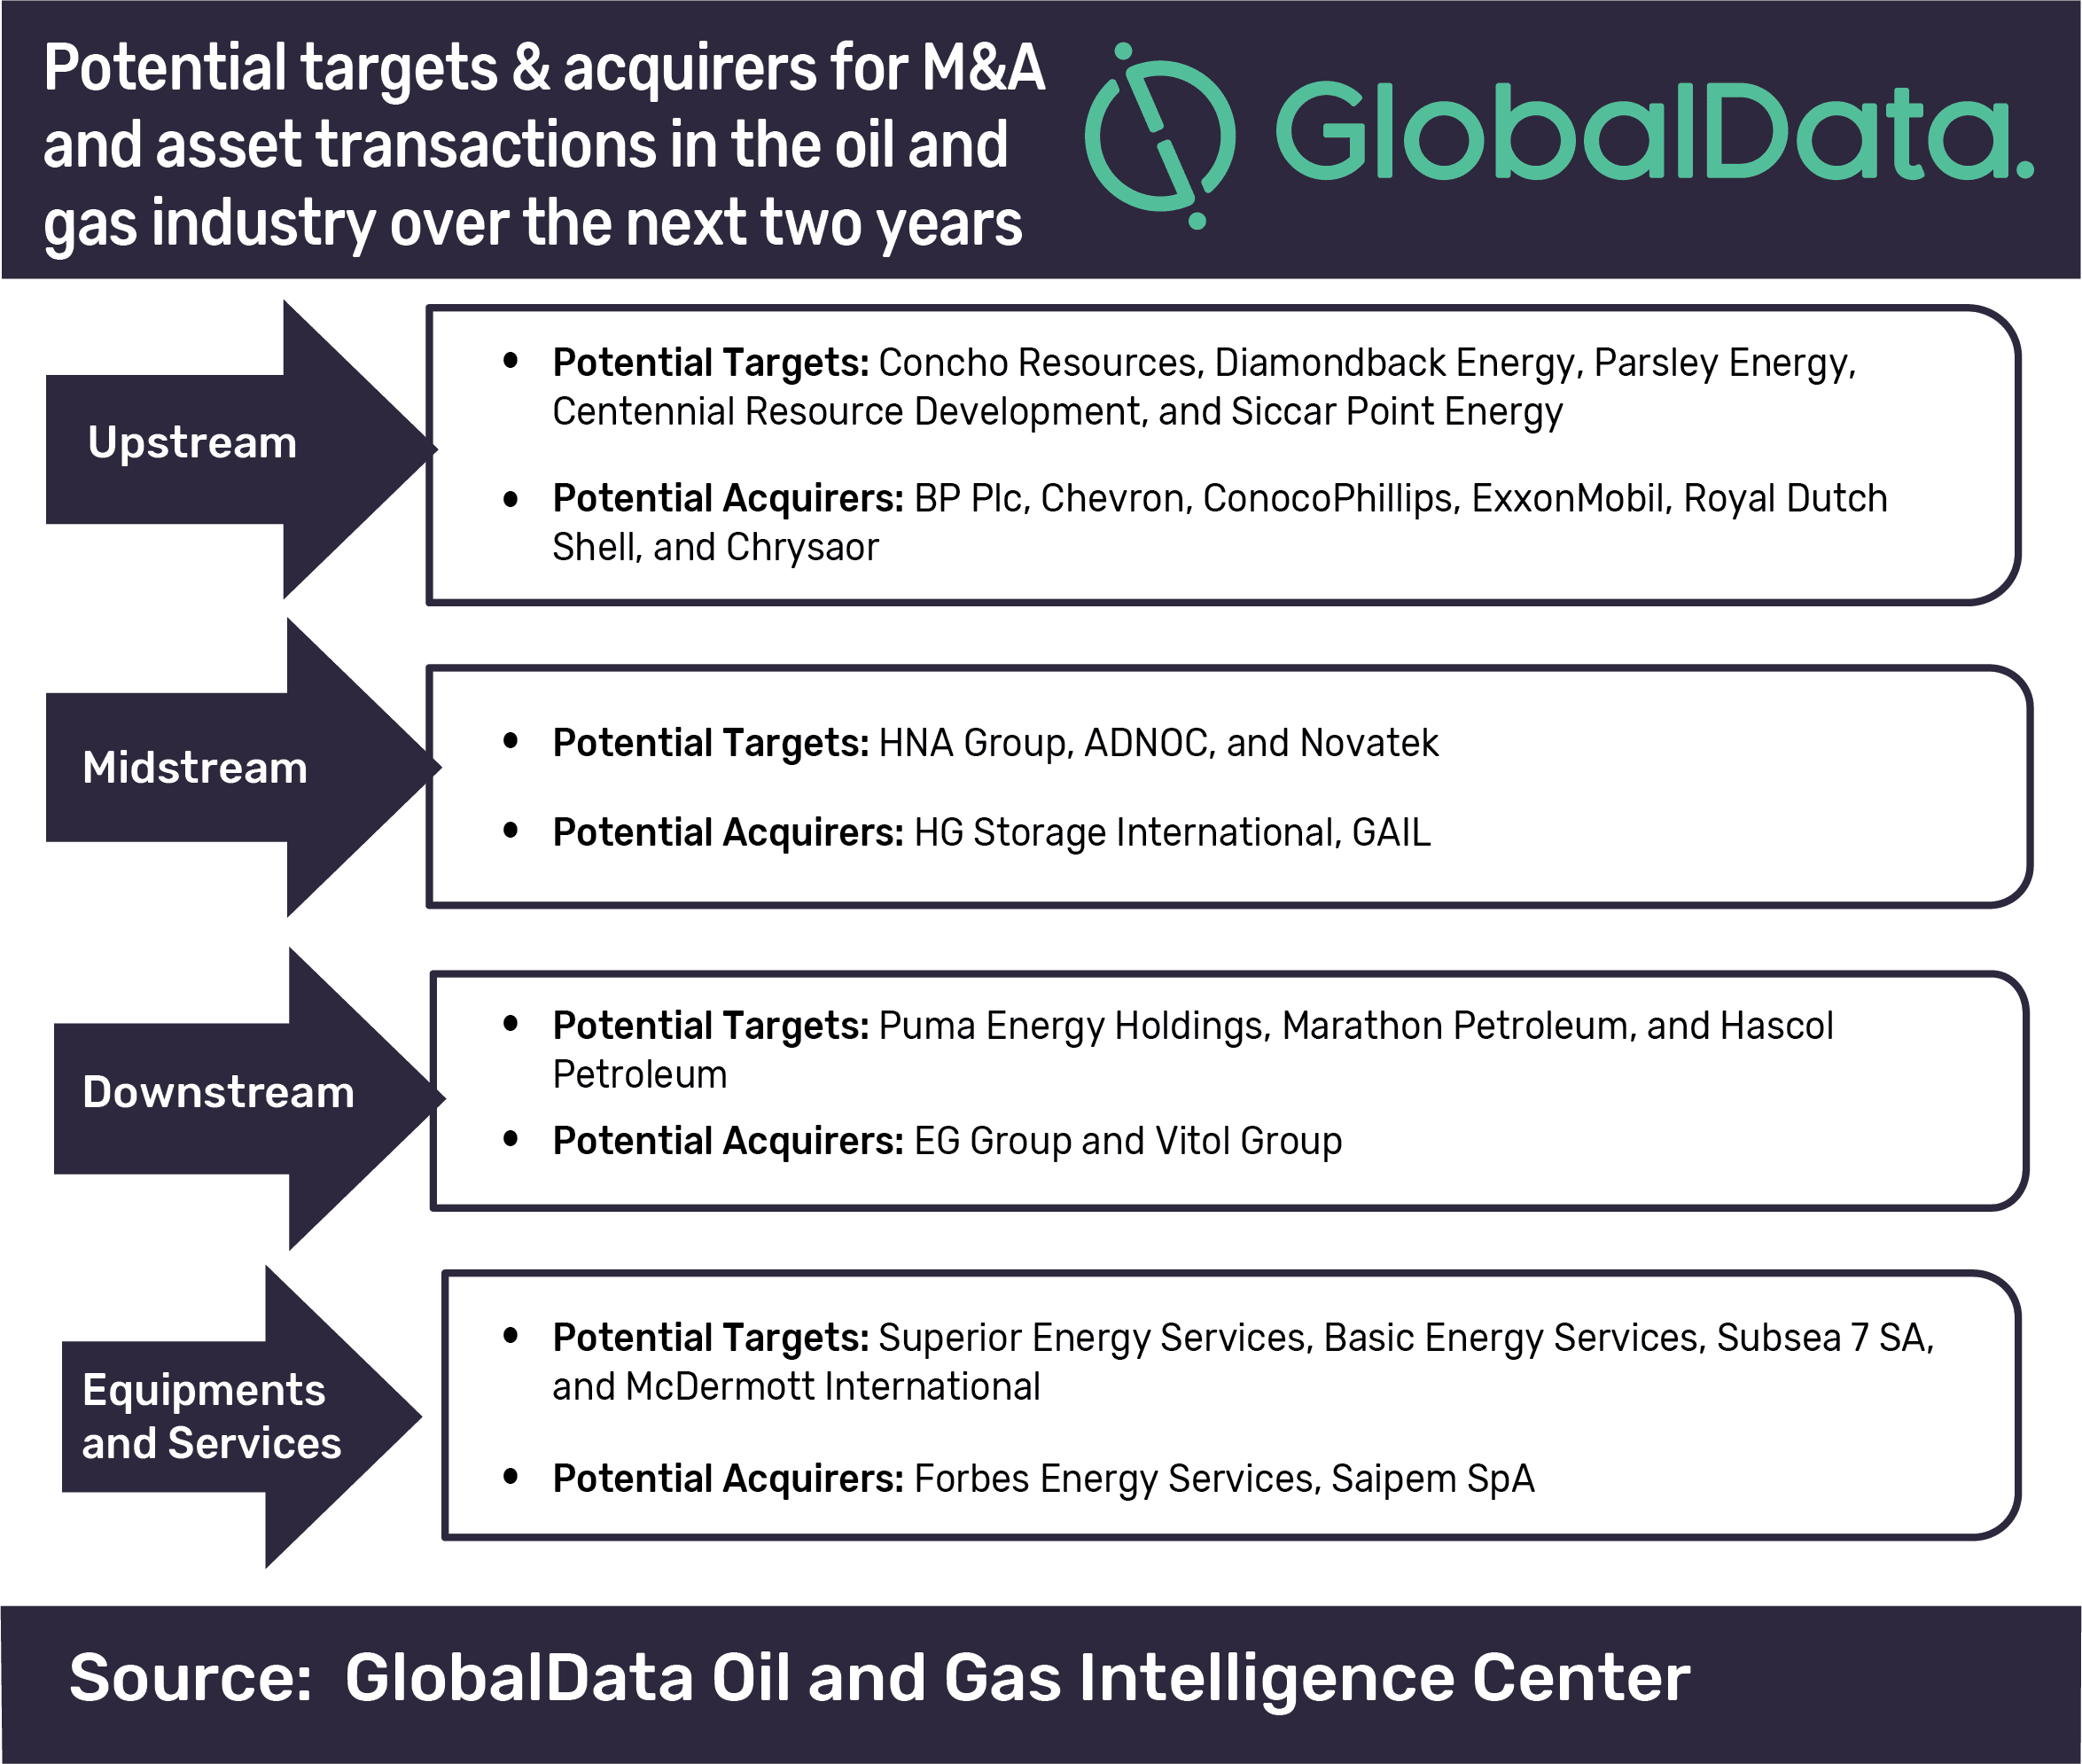 Emphasis on maintaining capital discipline driving M&A activity in the oil and gas industry